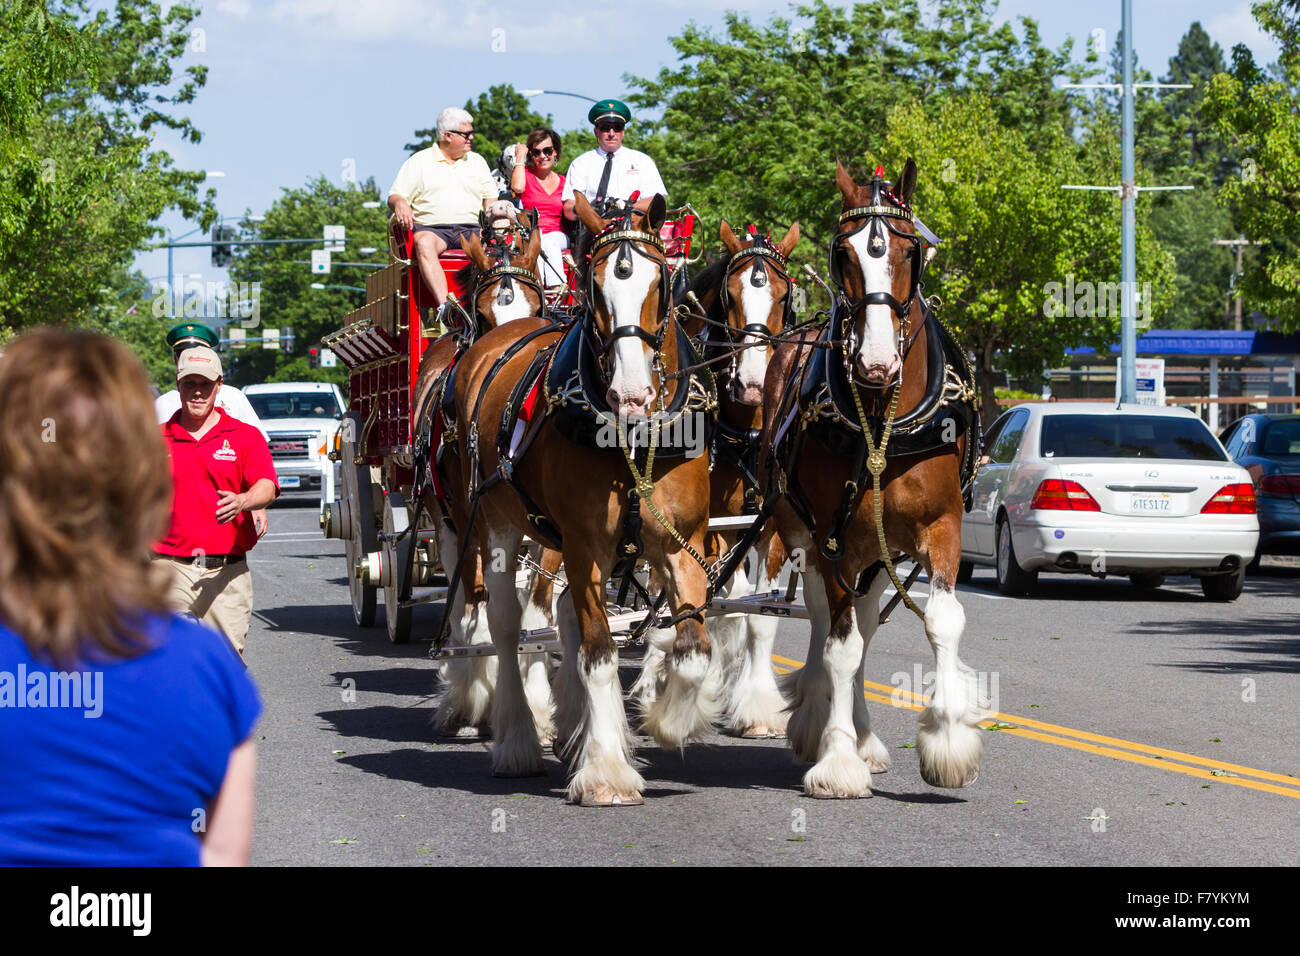 Clydesdale Horses Seaworld